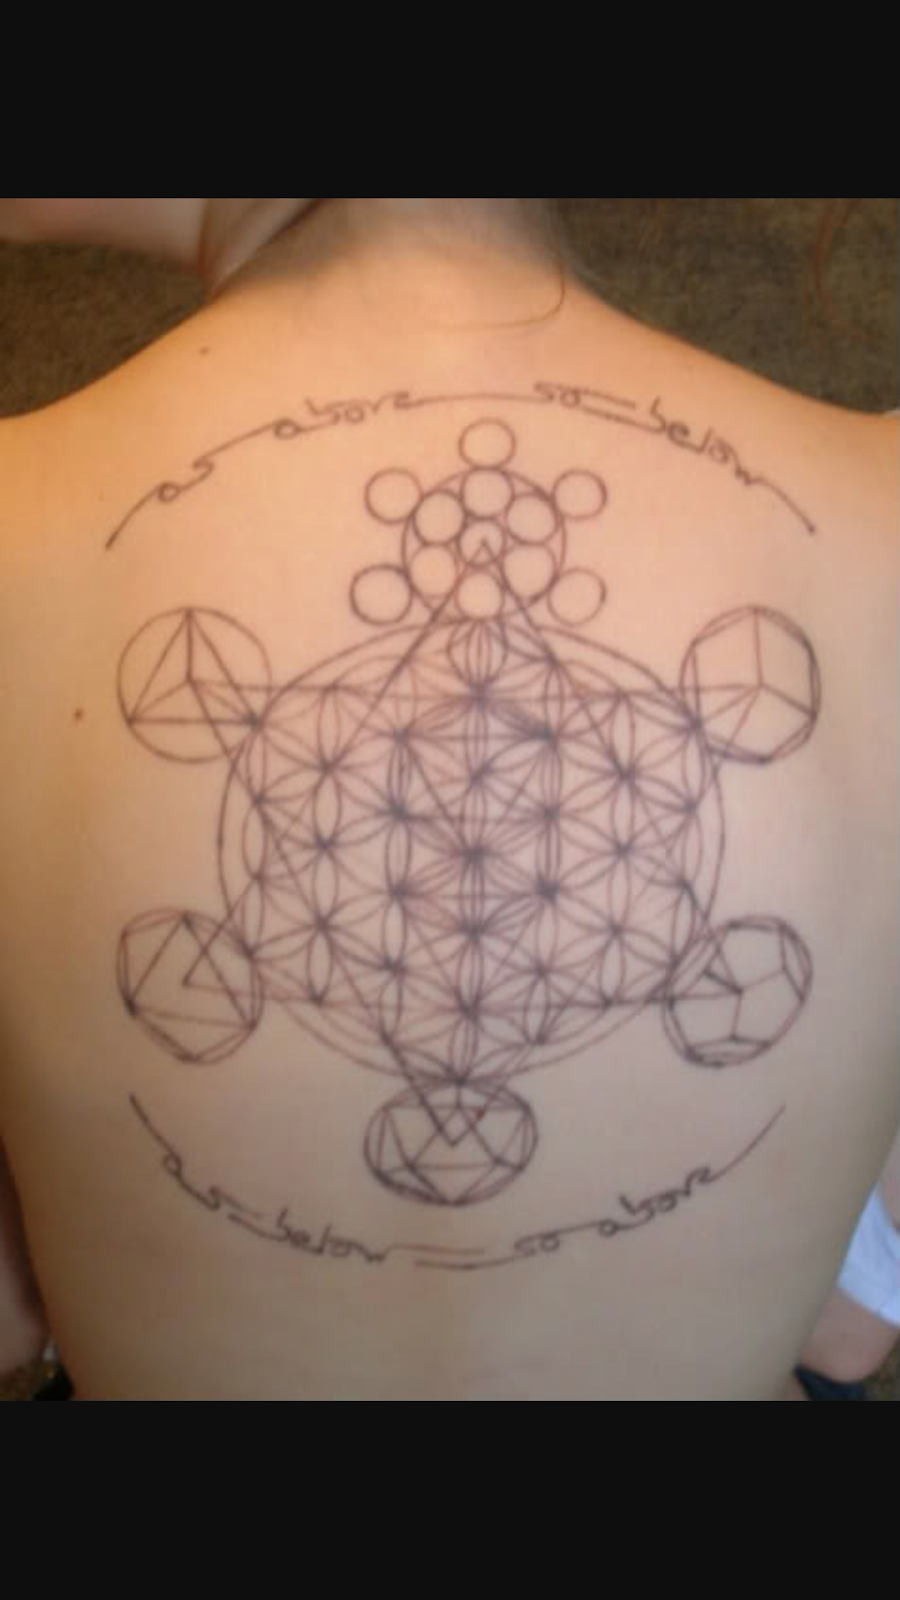 Alchemical Emblems  Occult Diagrams  And Memory Arts  Sacred Geometry Tattoos